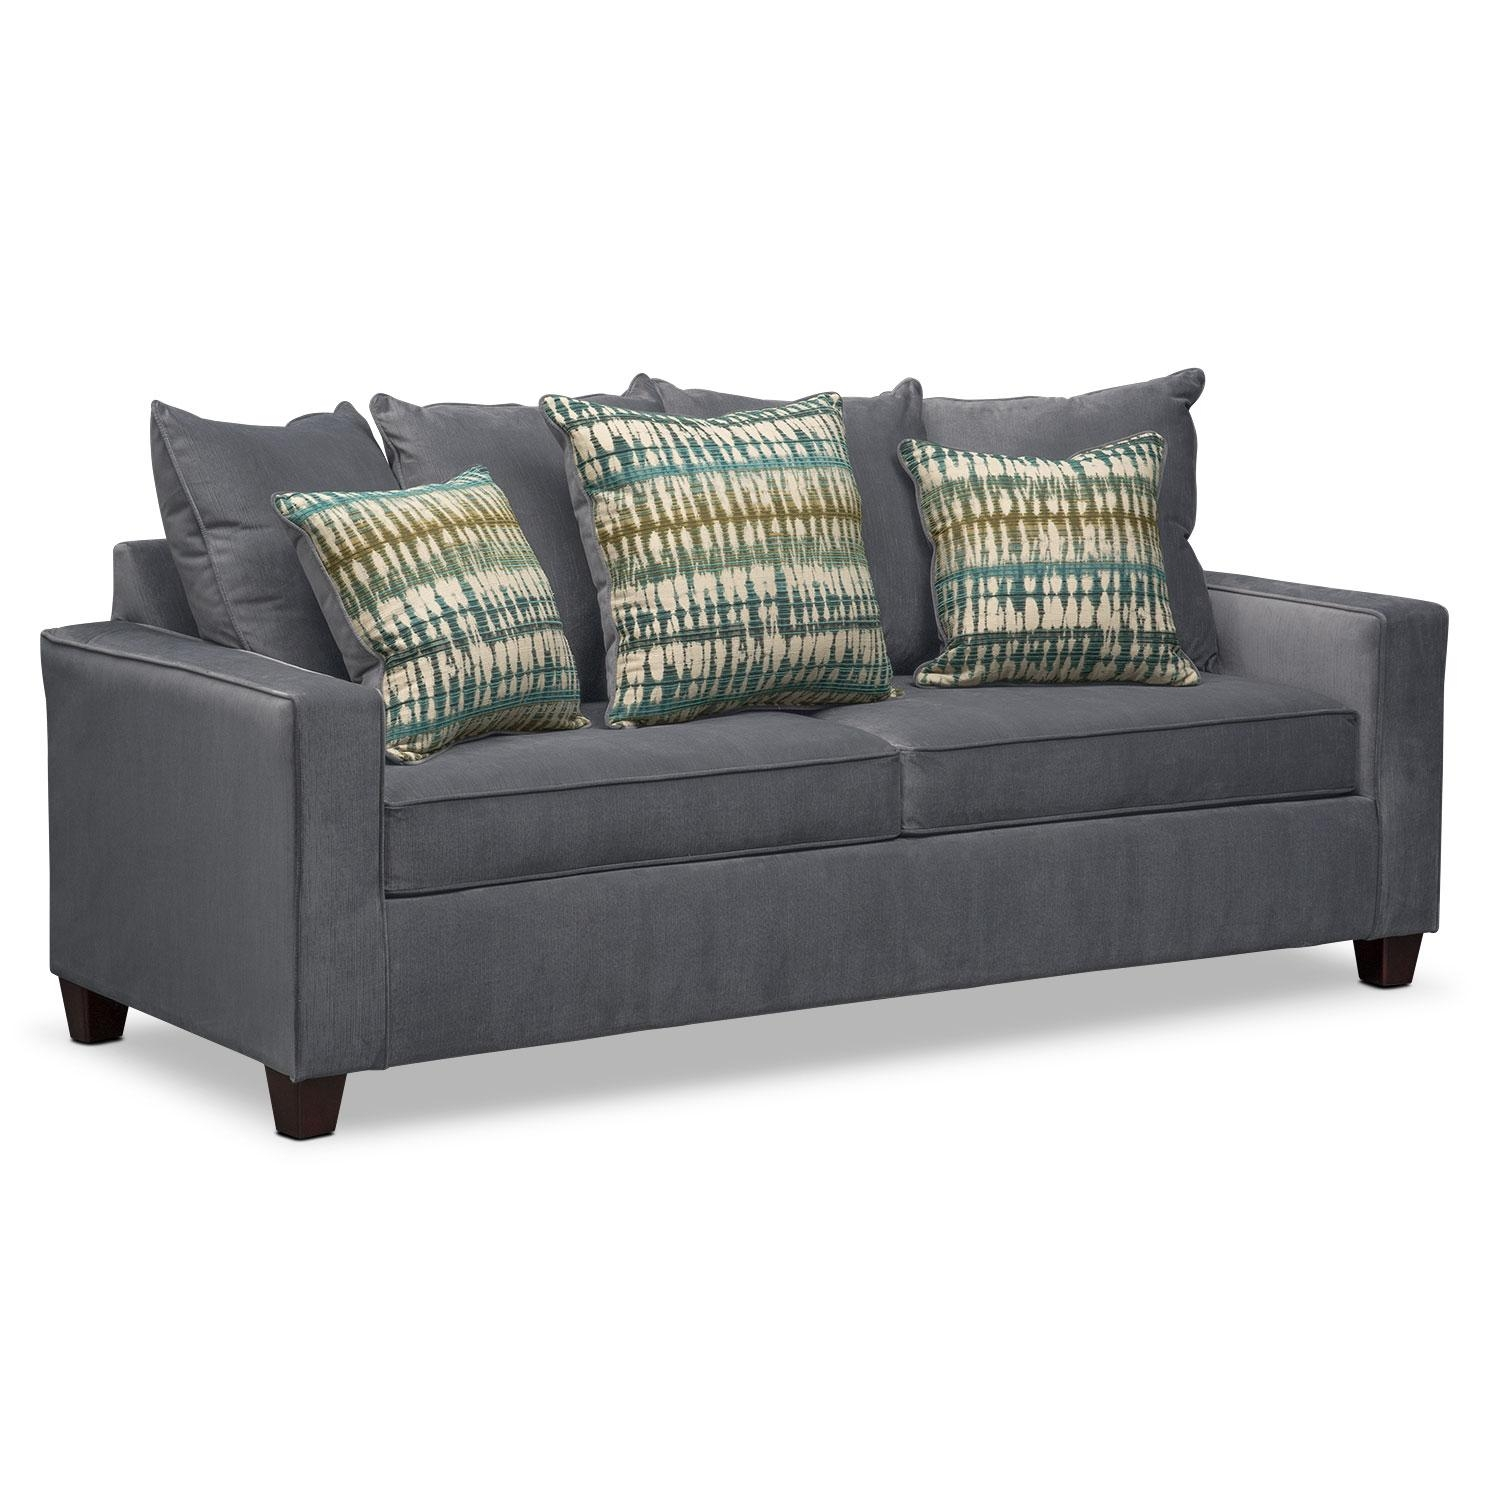 Bryden Queen Memory Foam Sleeper Sofa – Slate | Value City Furniture Intended For City Sofa Beds (View 3 of 20)